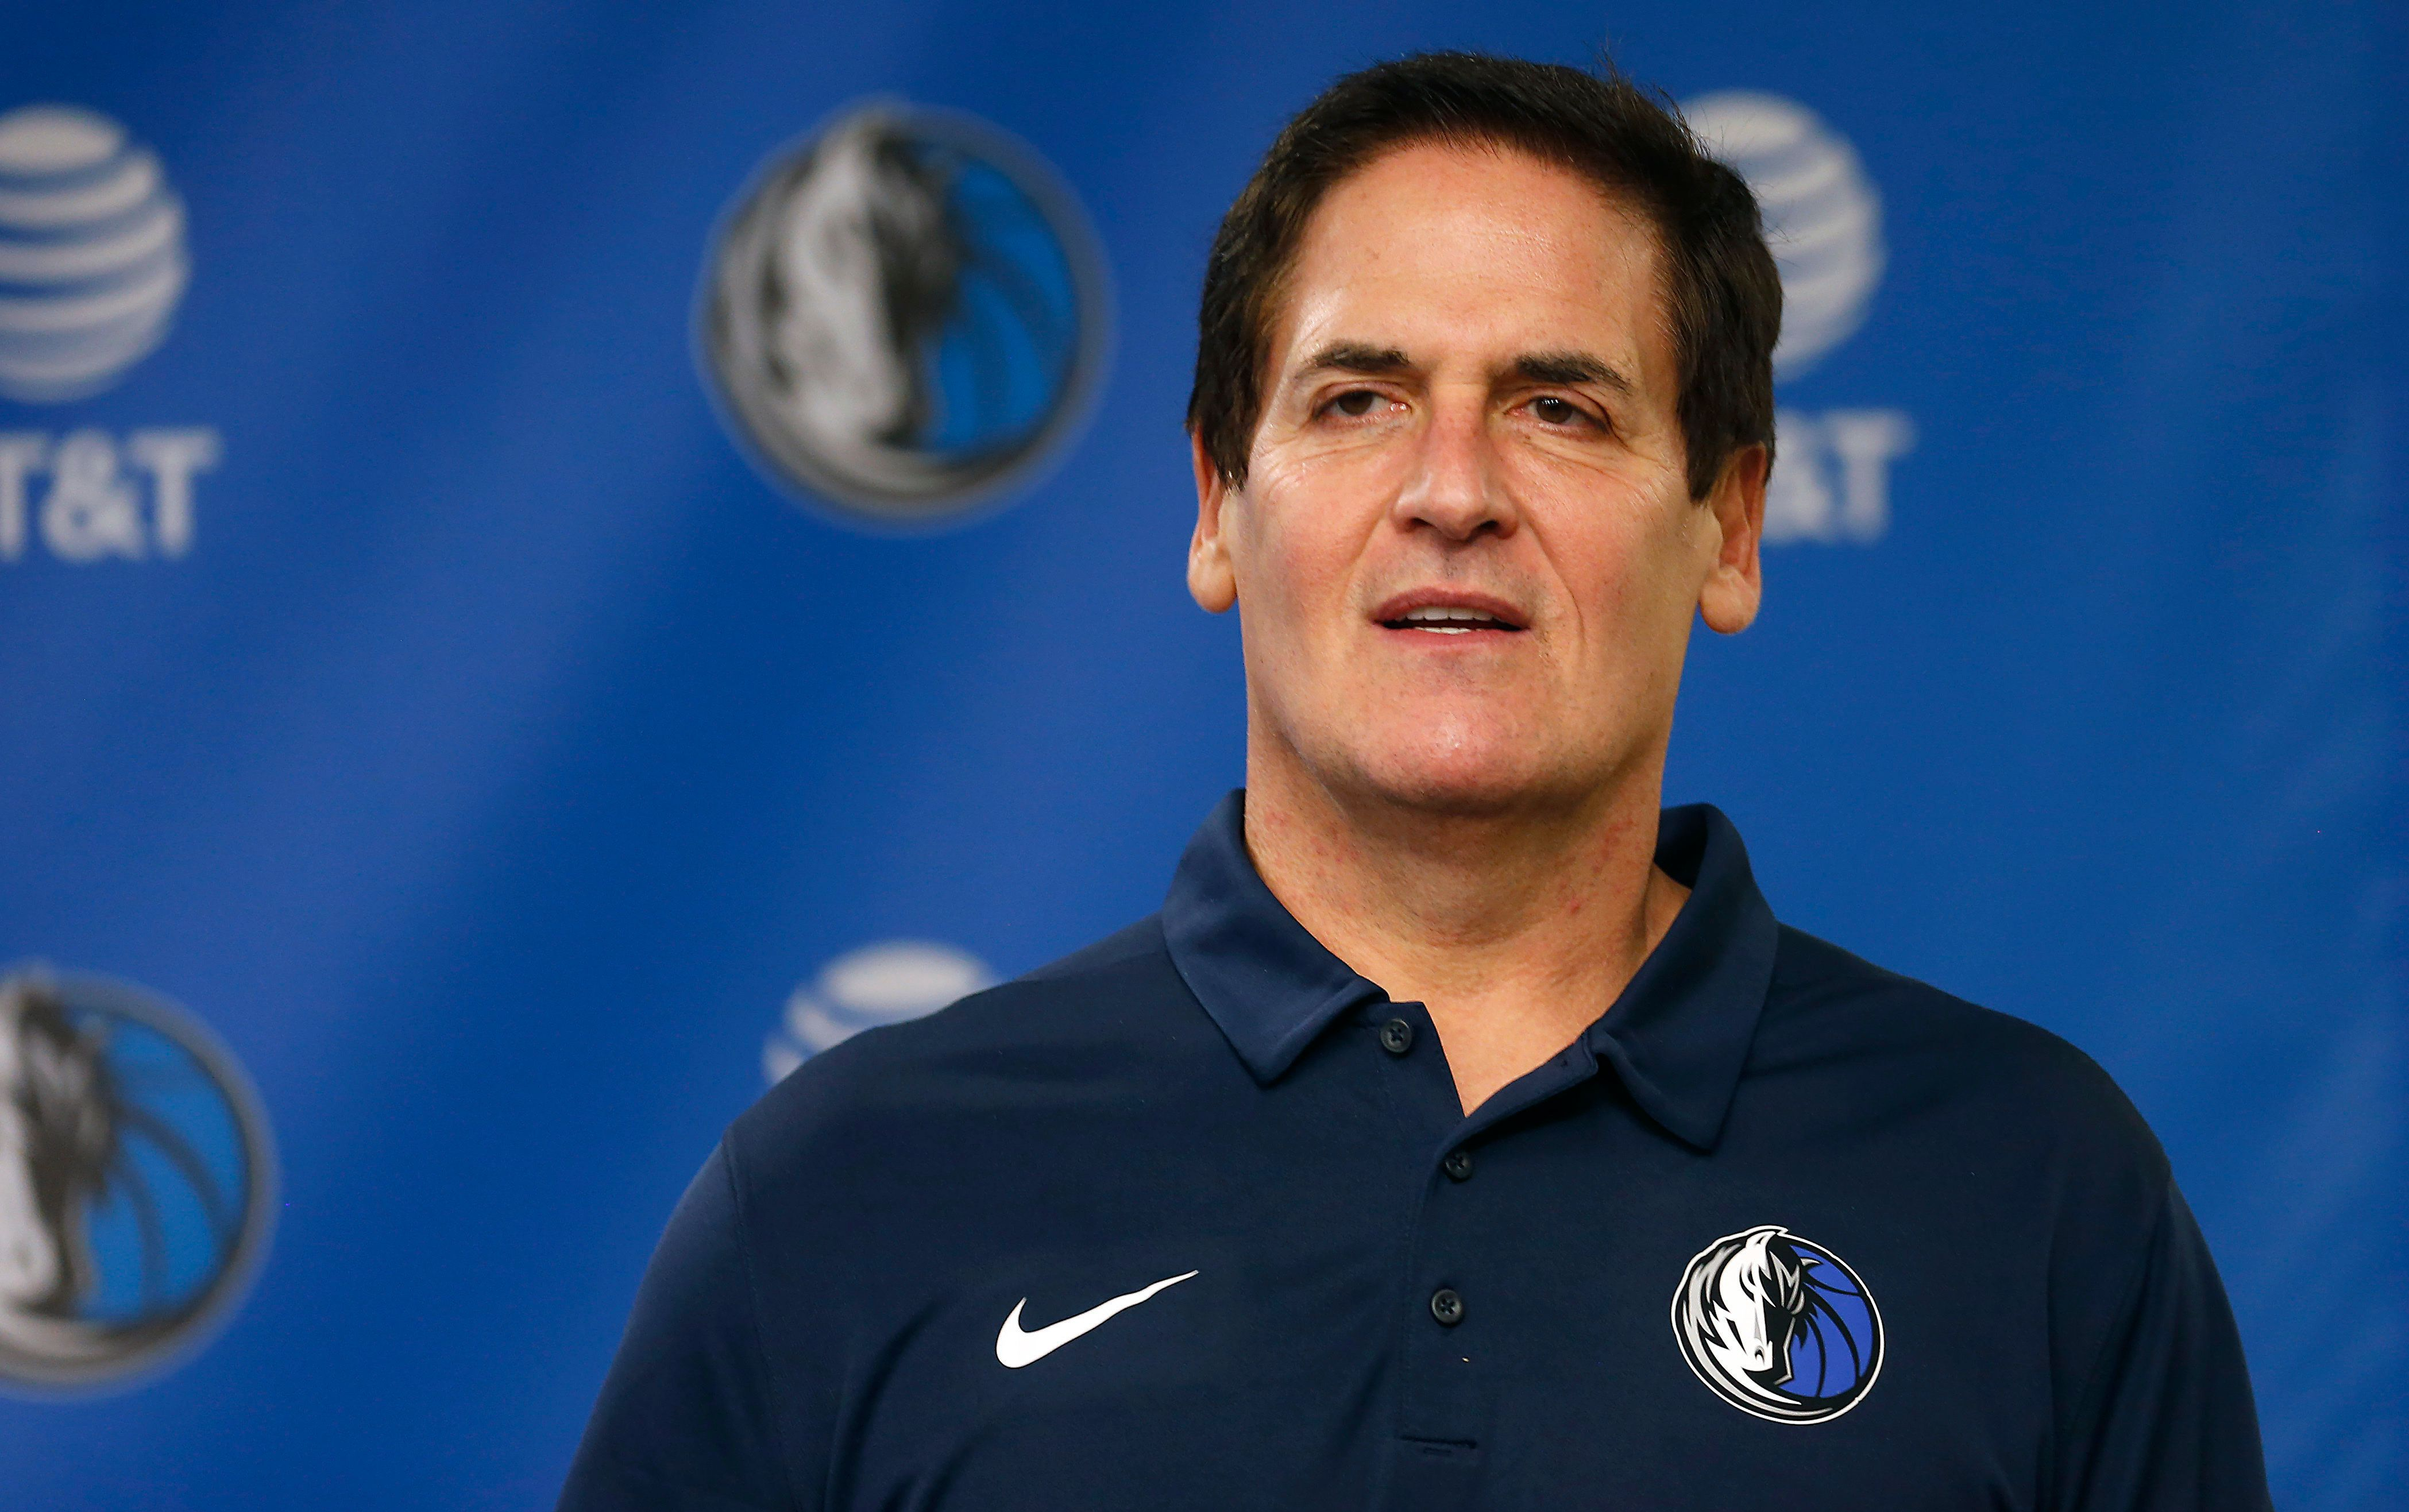 Dallas Mavericks owner Mark Cuban stands on stage before Cynthia Marshall, new interim CEO of the team, is introduced during a news conference, Monday, Feb. 26, 2018, in Dallas. Cuban has teased about the notion of running for president in 2020 in a campaign that could mirror President Donald Trump's blend of reality TV and politics. But Cuban's political career could be quickly derailed by sexual harassment and misconduct allegations within his team. (AP Photo/Ron Jenkins)